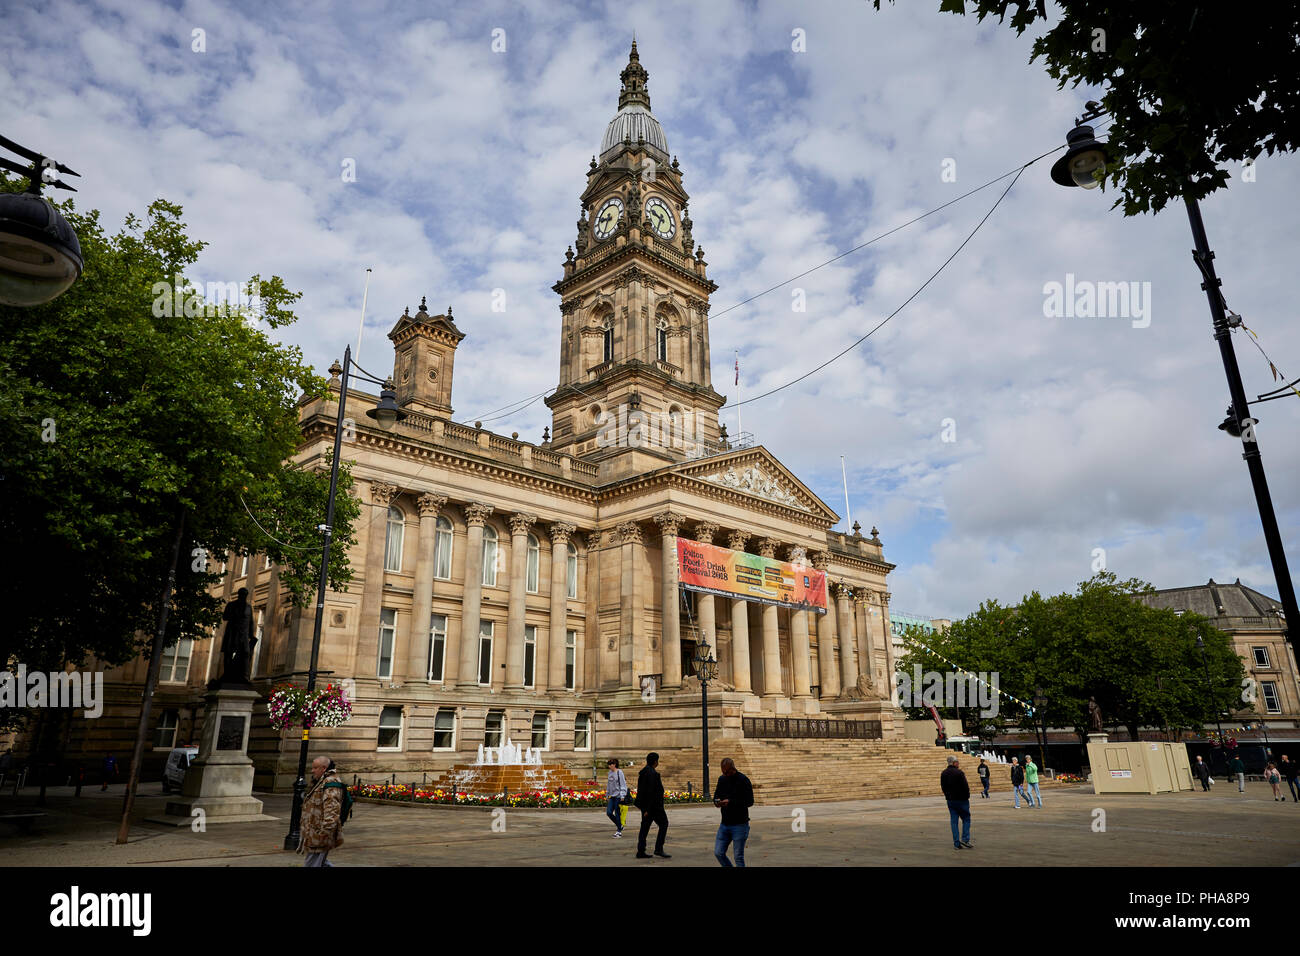 lancashire sandstone  landmark Grade II* listed building Bolton Town Hall facing Victoria Square designs by William Hill with baroque-style clocktower - Stock Image